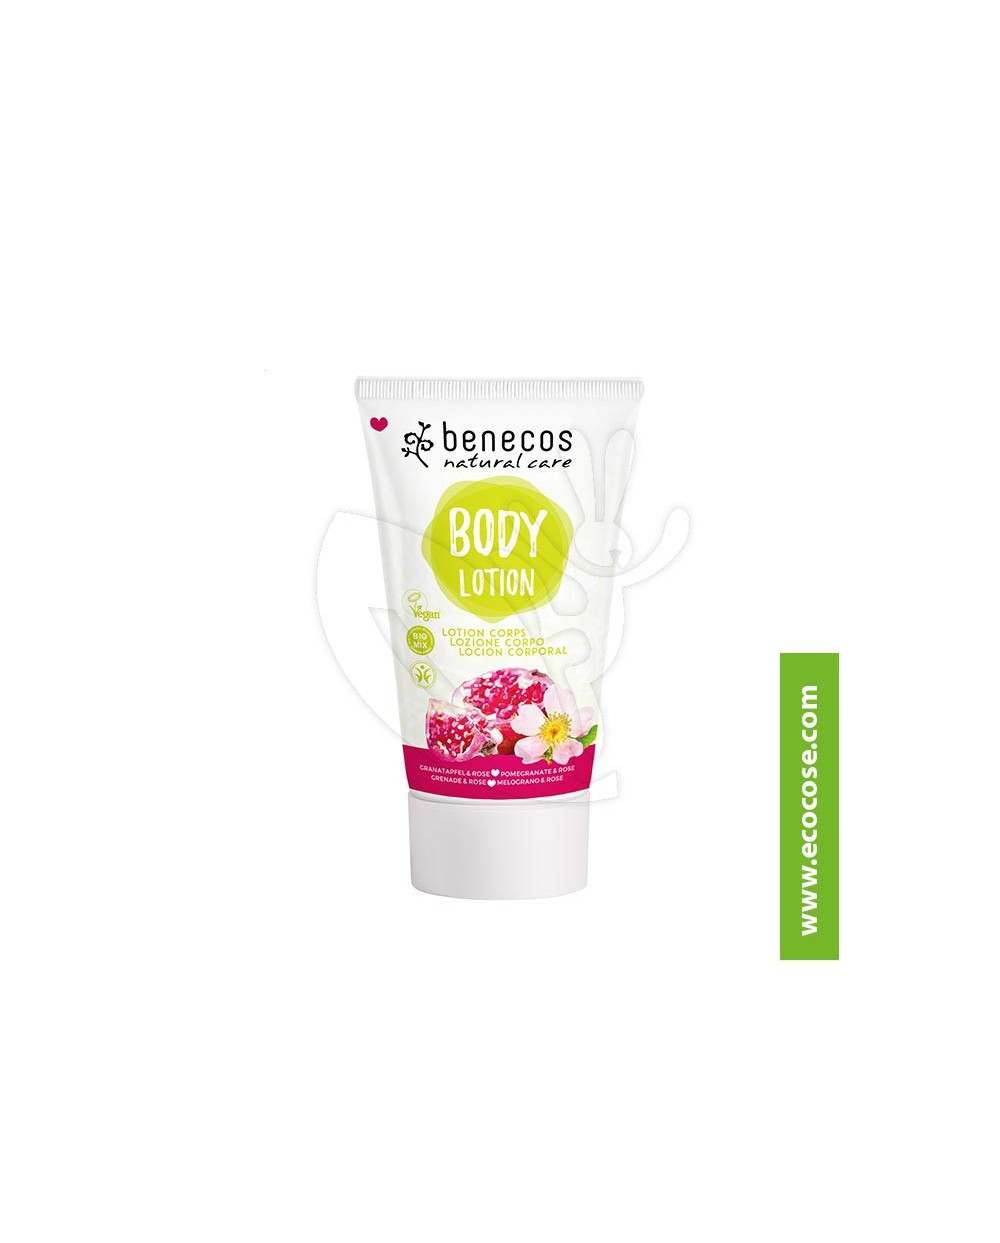 Benecos - Natural Care - Body Lotion - Melograno e Rosa